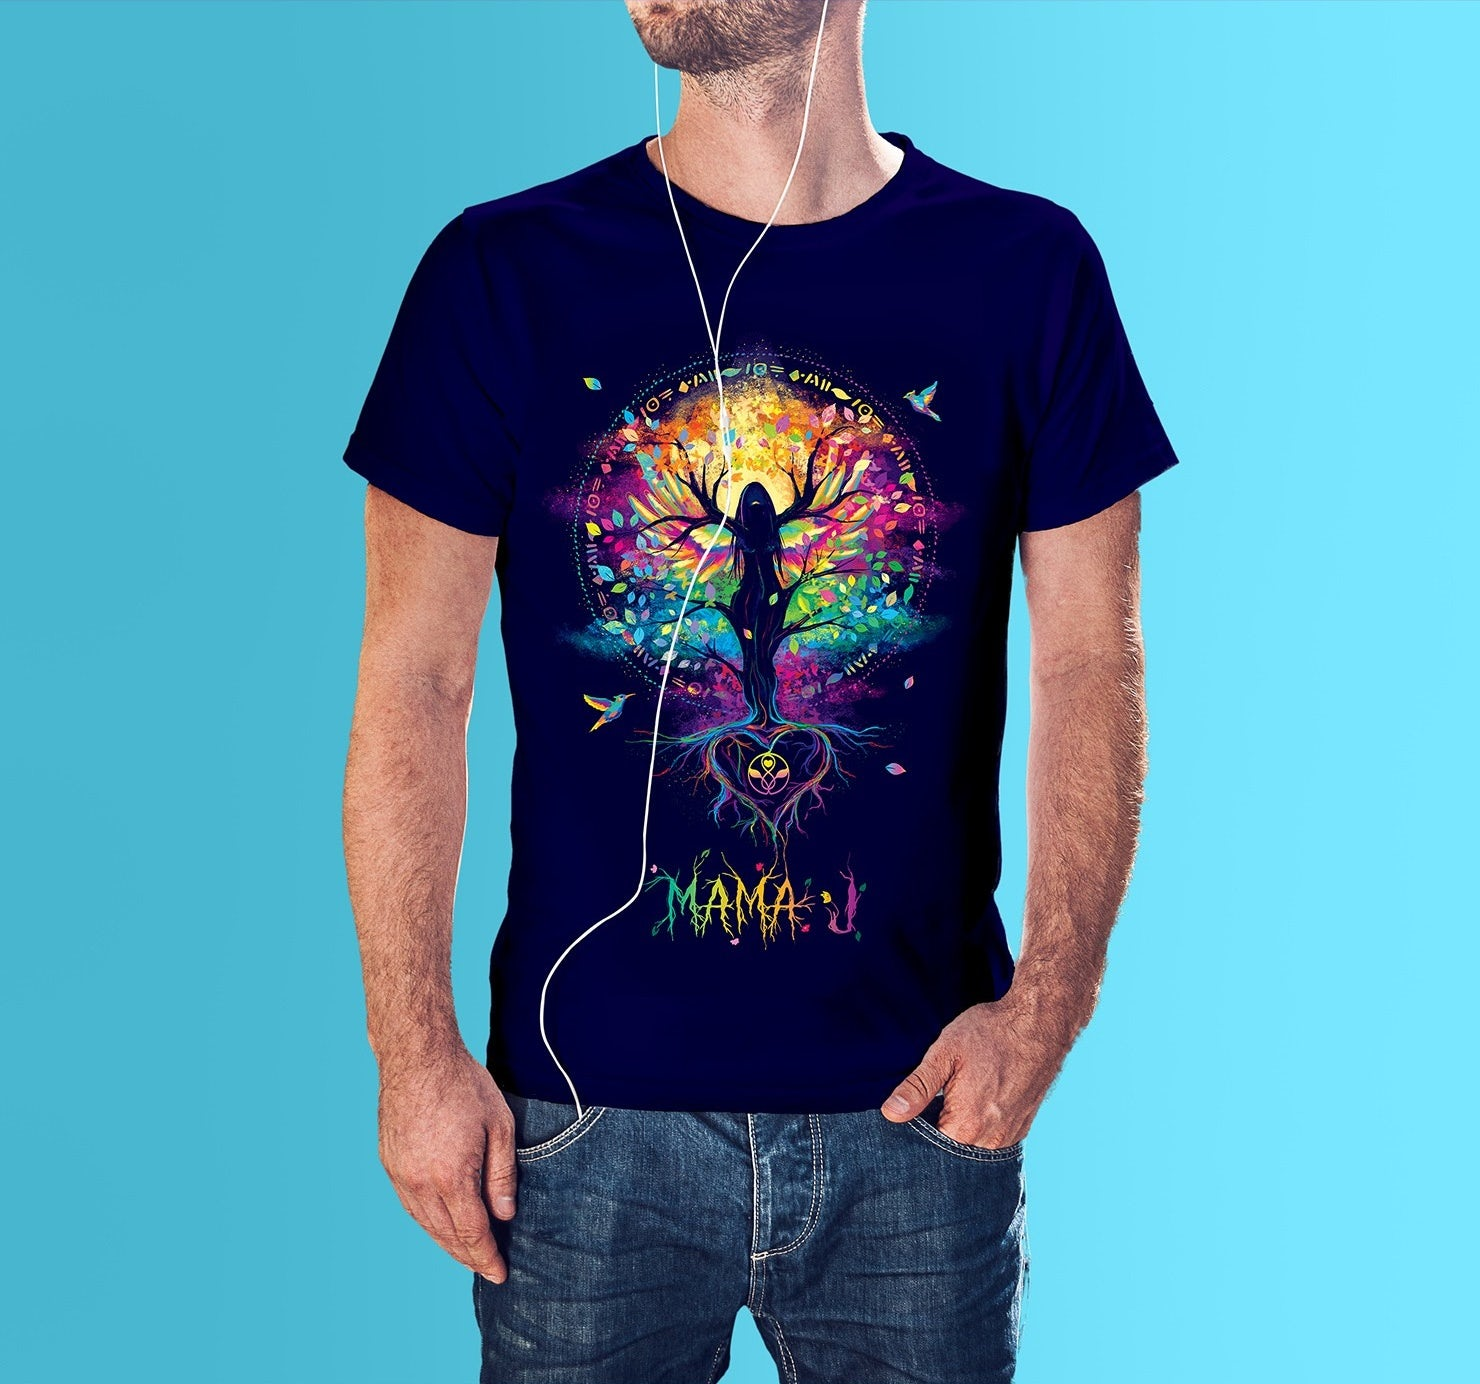 0b35cf5d0 The 10 best freelance t-shirt designers for hire in 2019 - 99designs